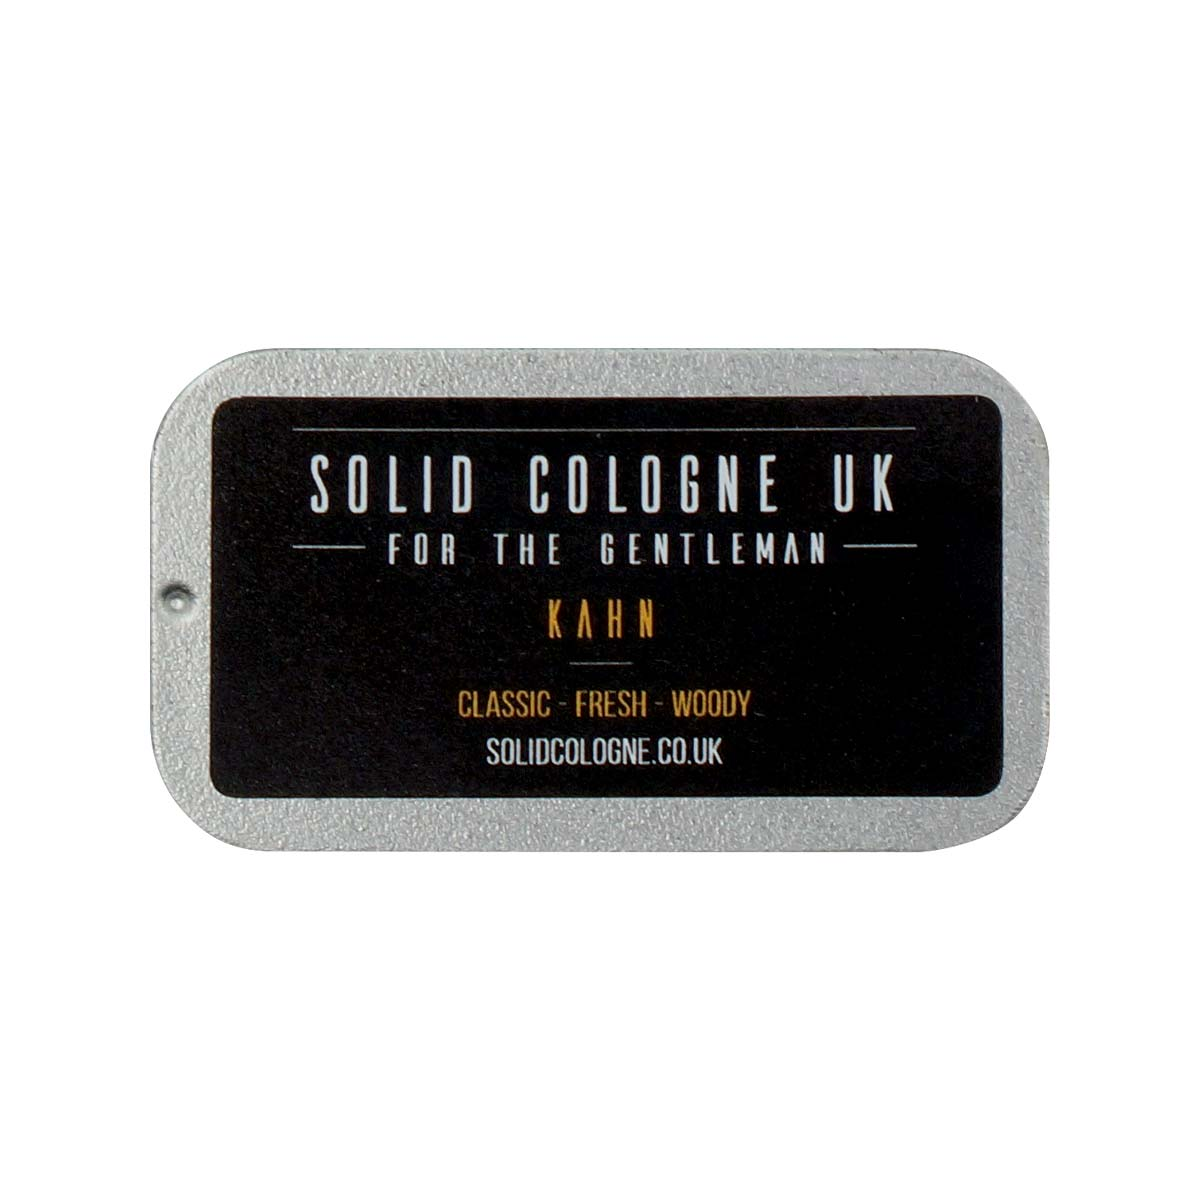 Solid Cologne UK - Kahn 18ml